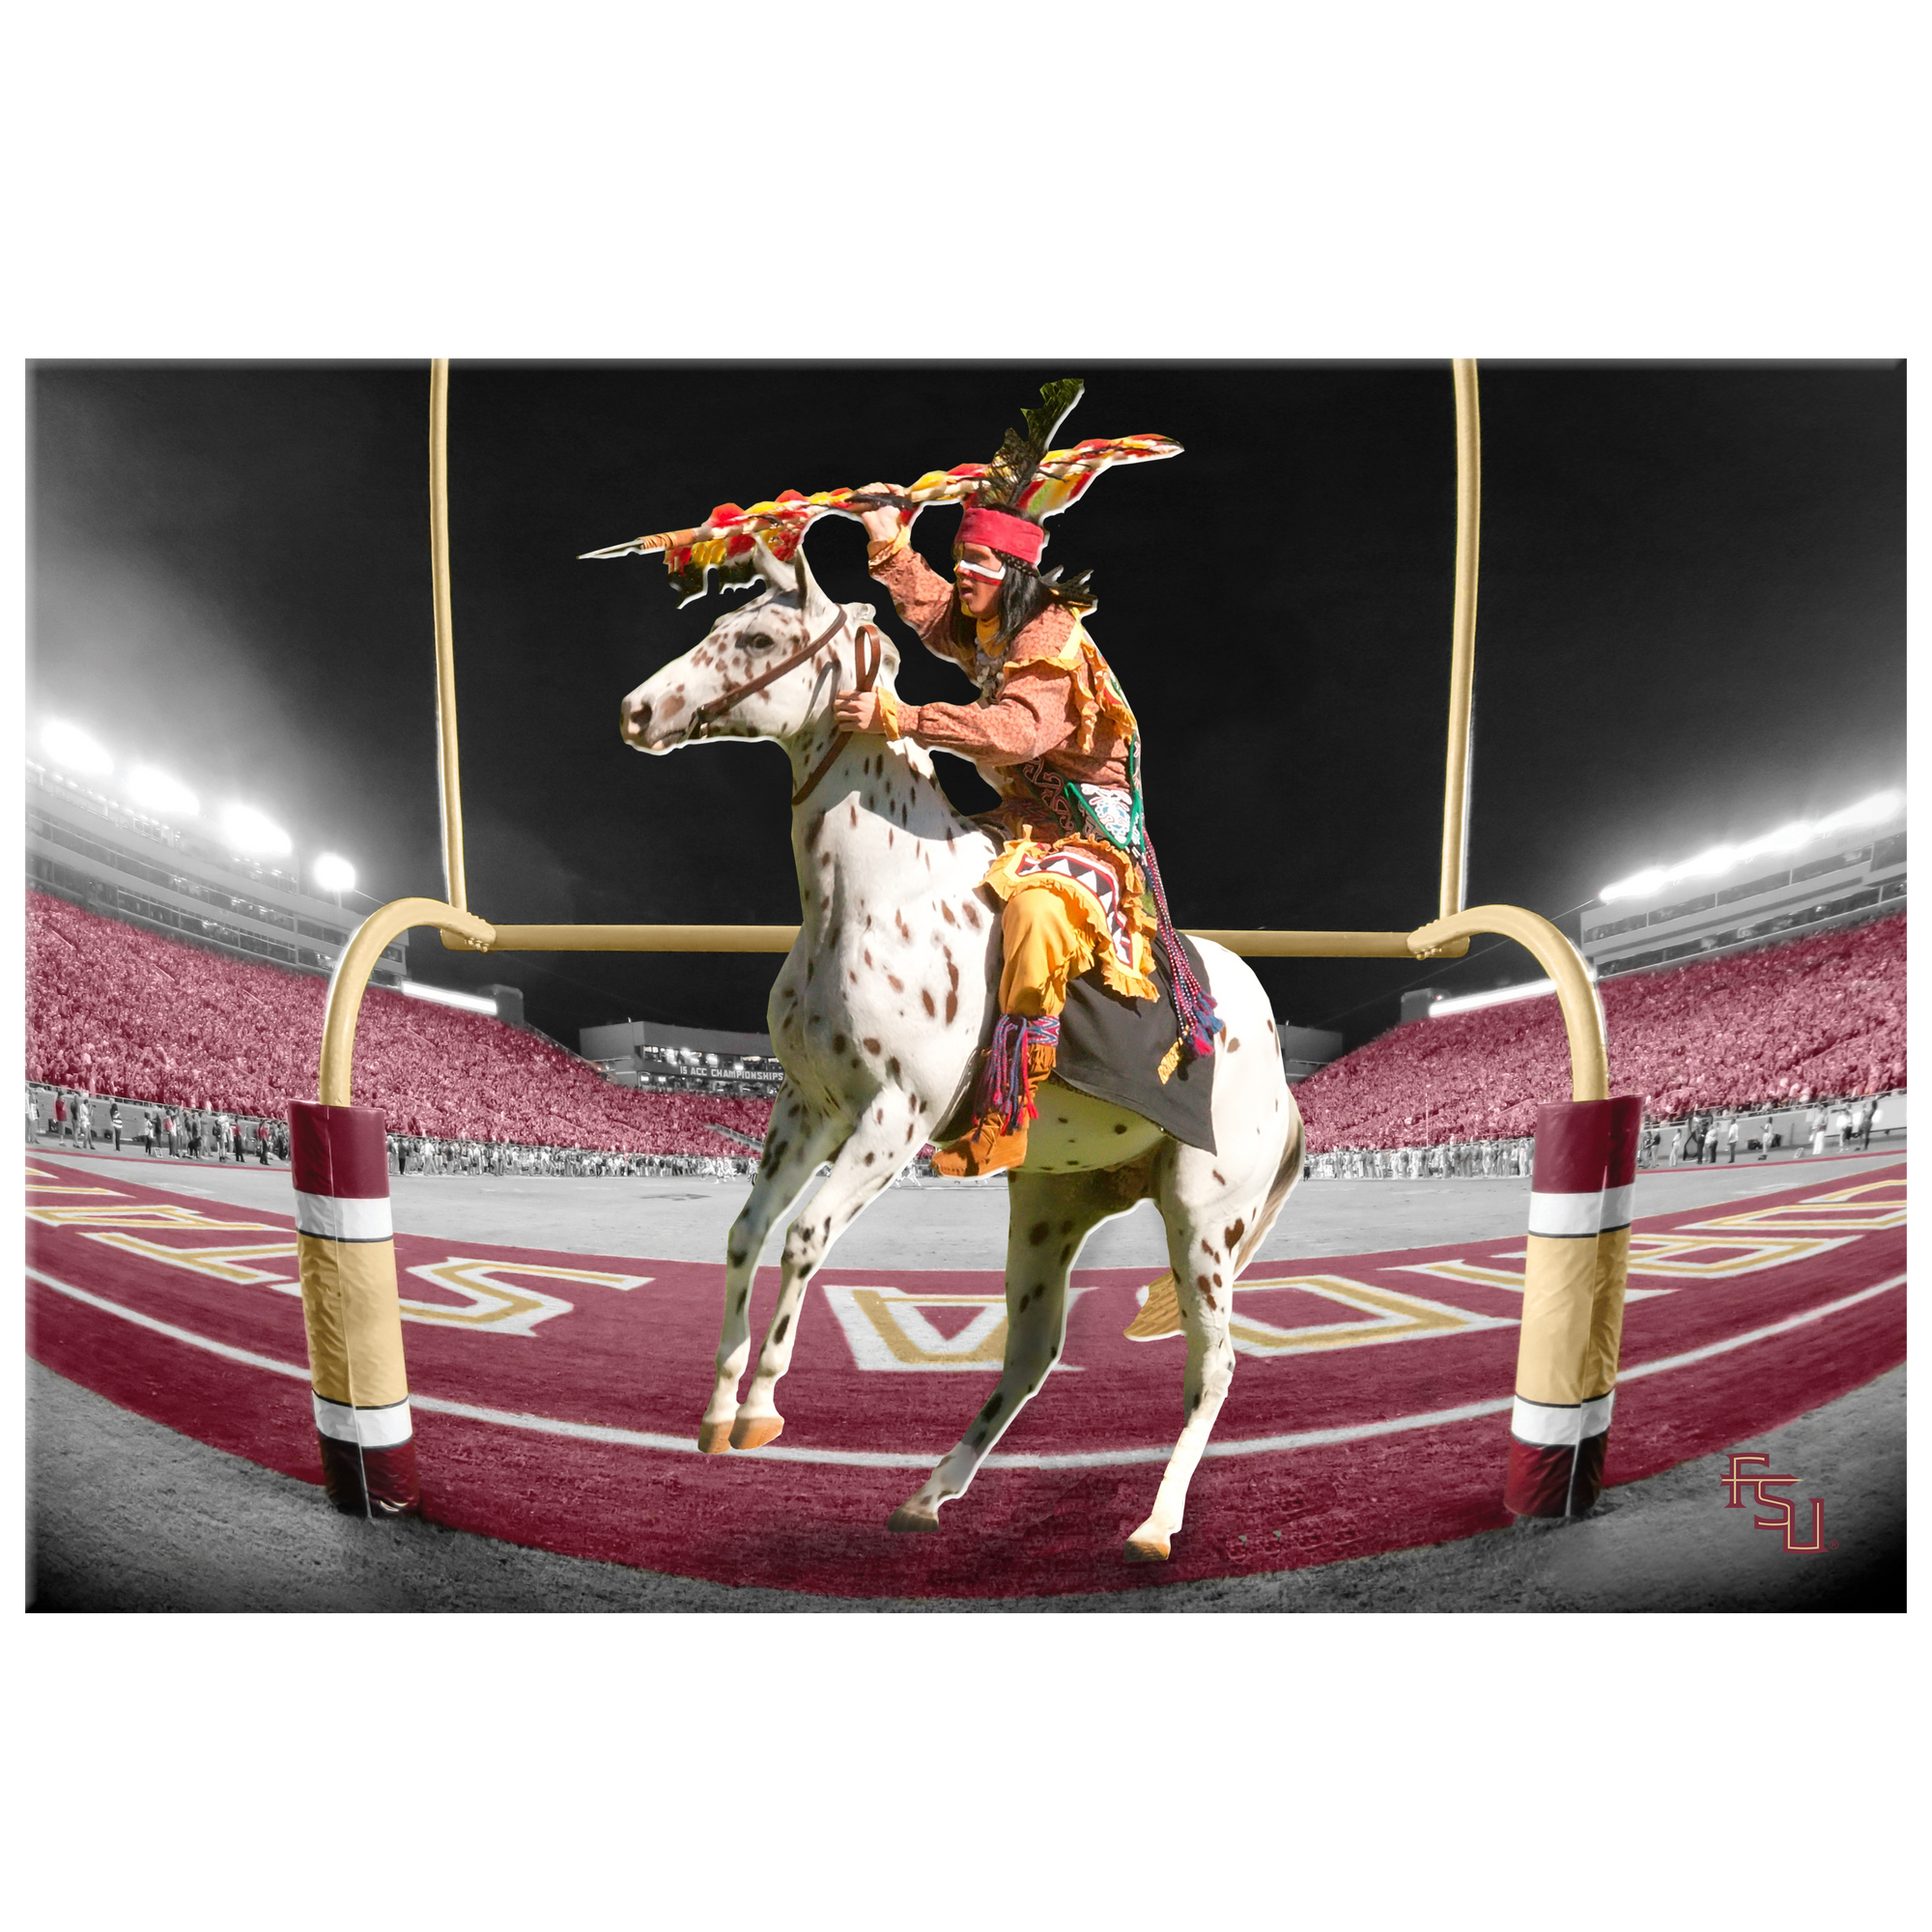 Florida State Seminoles - FSU Score - 2 Layer Dimensional - College Wall Art #Dimensional